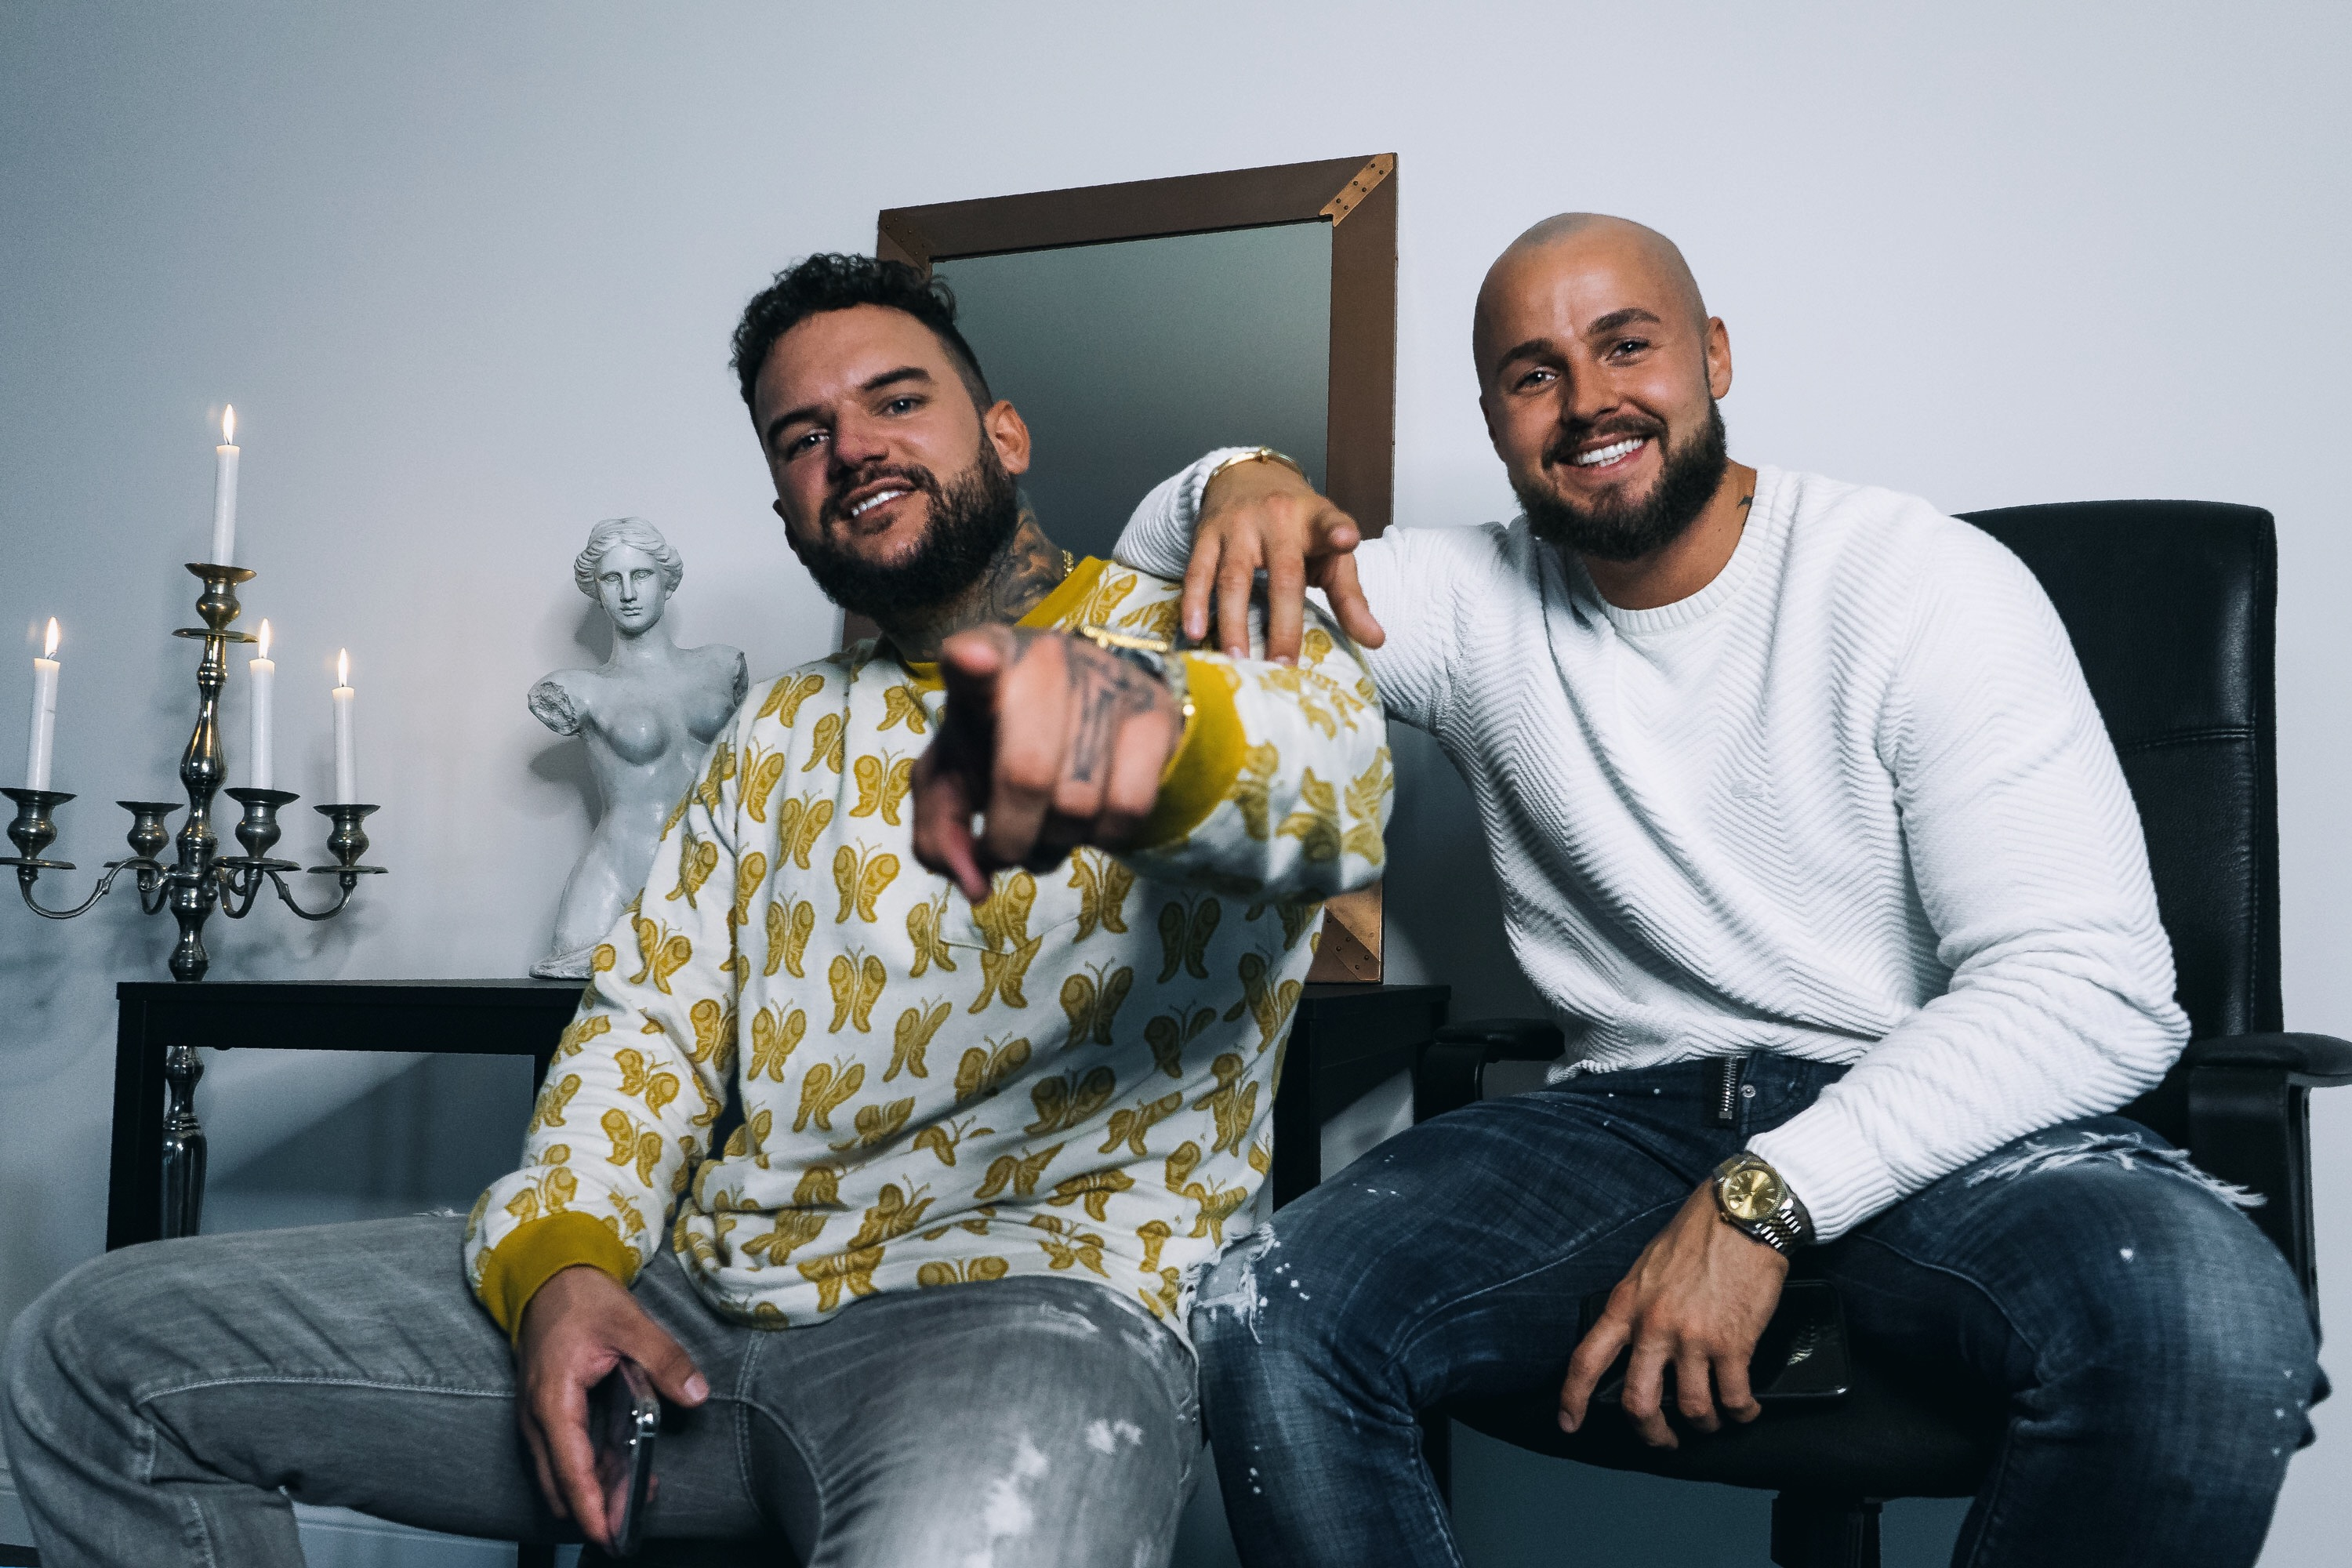 Meet The Kings Of Germany's Tattoo Space, Nicasso and Harry Weiss